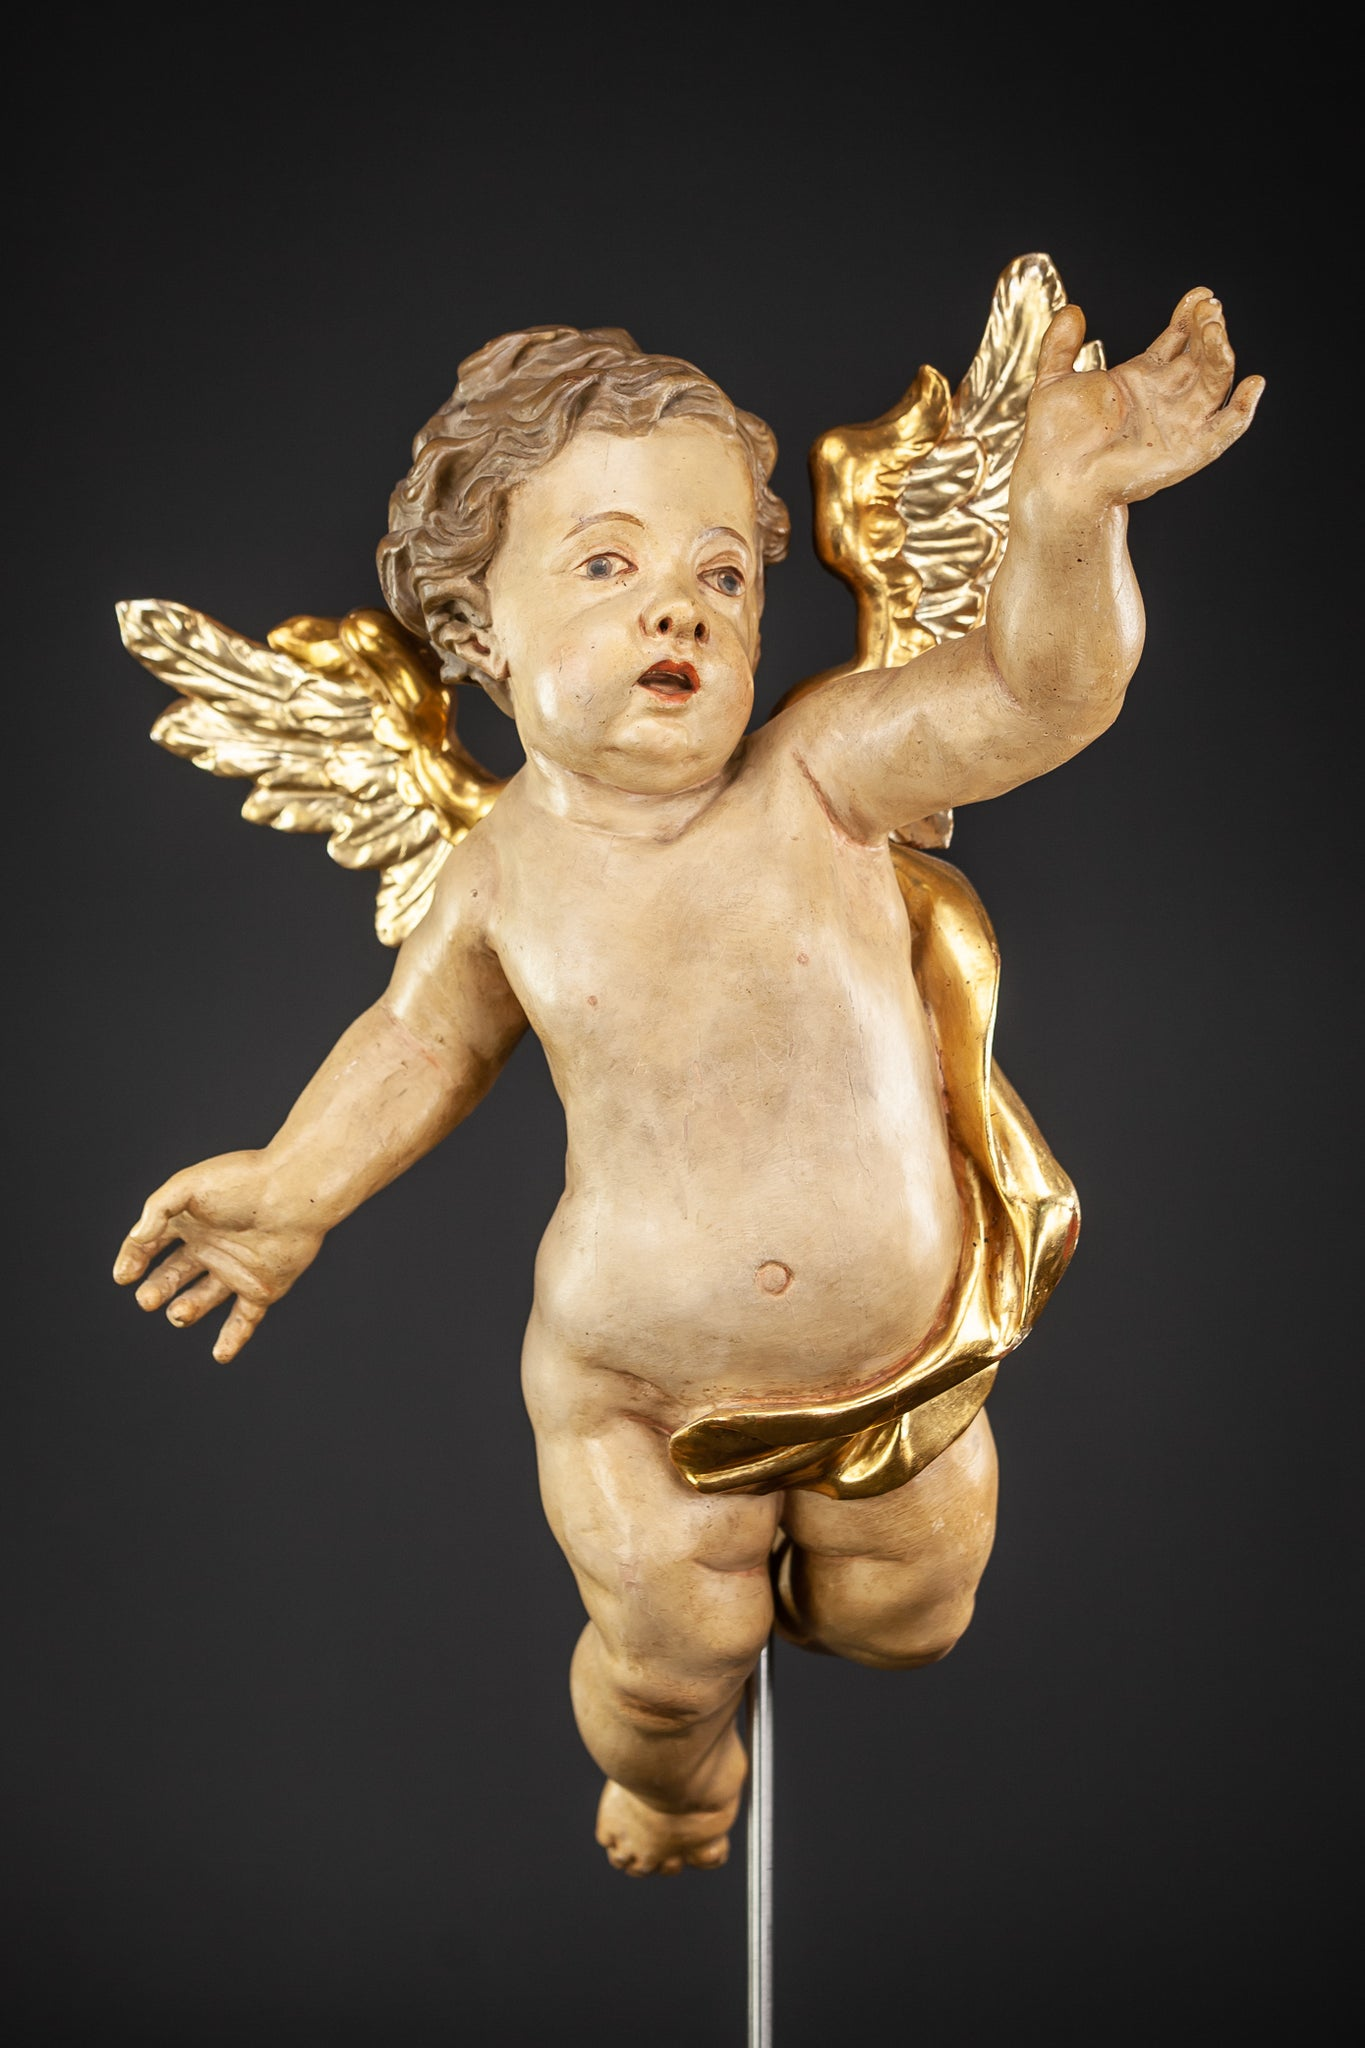 Angel Baroque Wood Carving Statue 20""